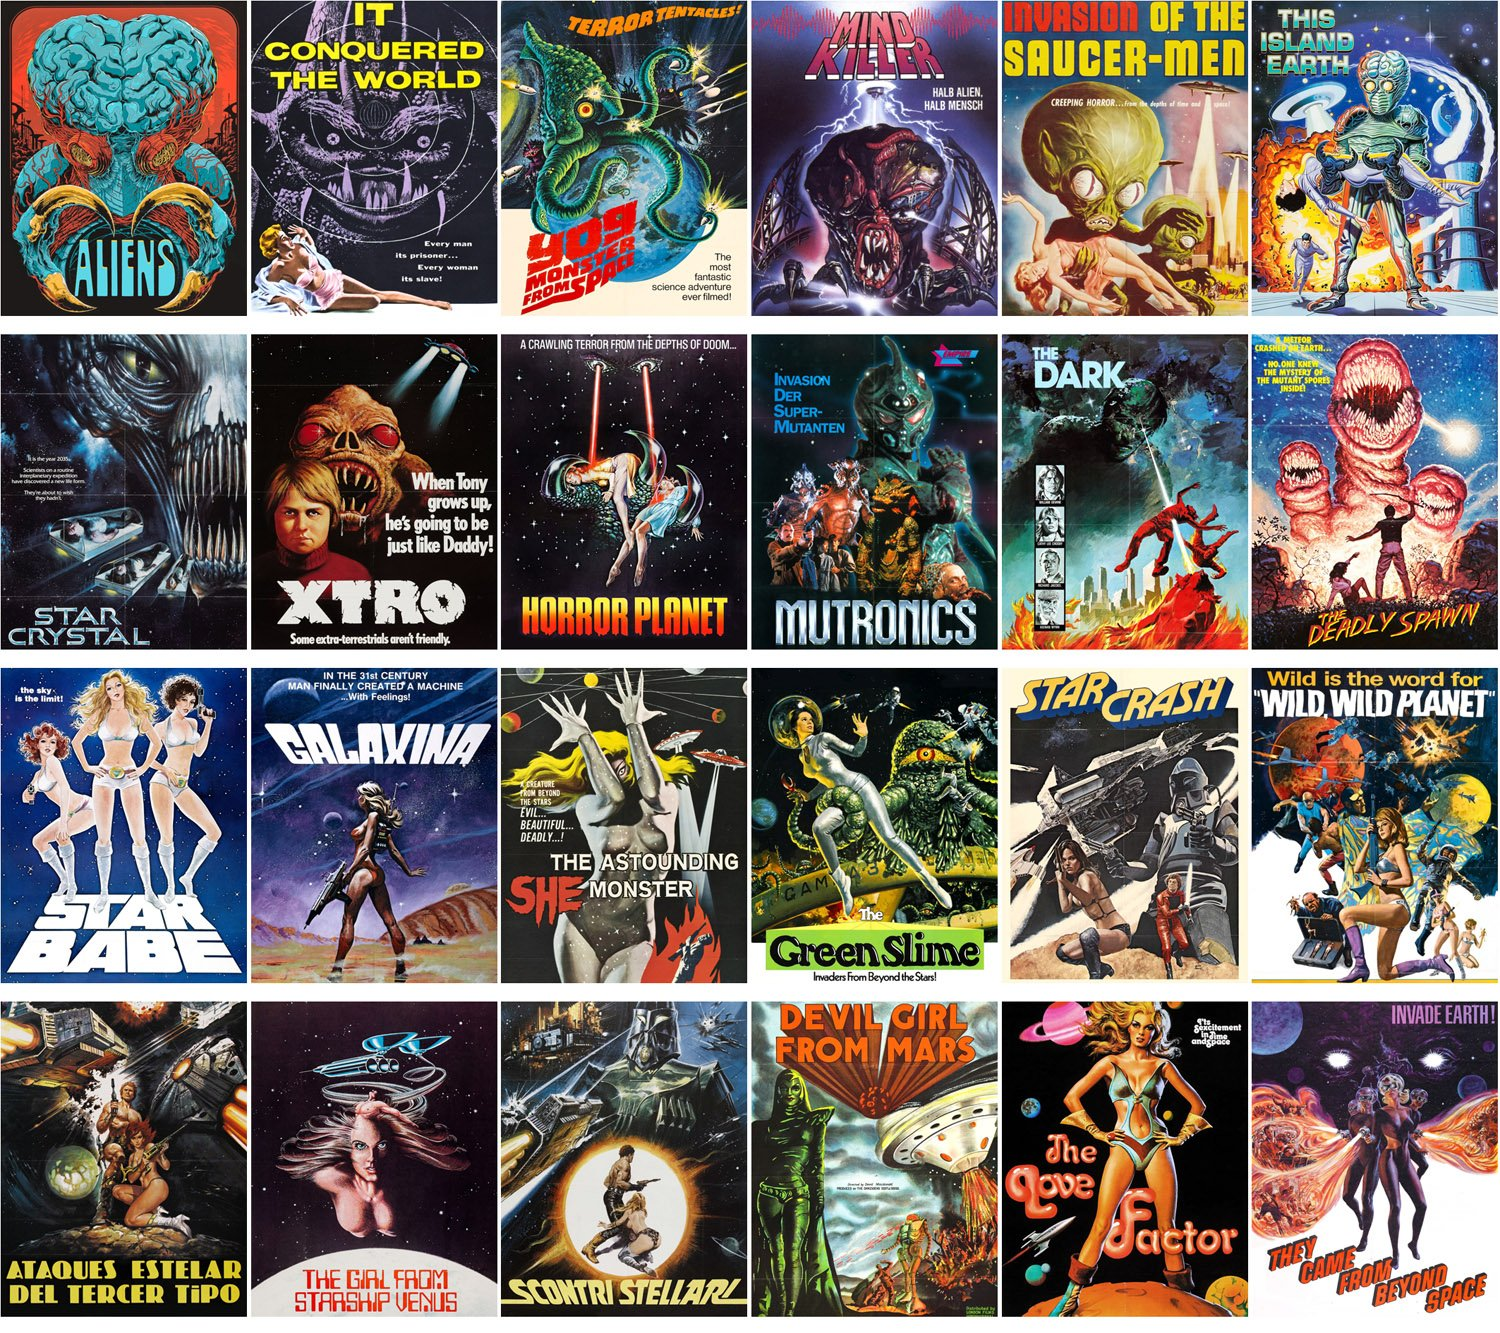 Amazon.com : Postcard Set 24pcs Aliens and Sexy Girls Scifi Vintage Trash Horros Movie Posters : Office Products